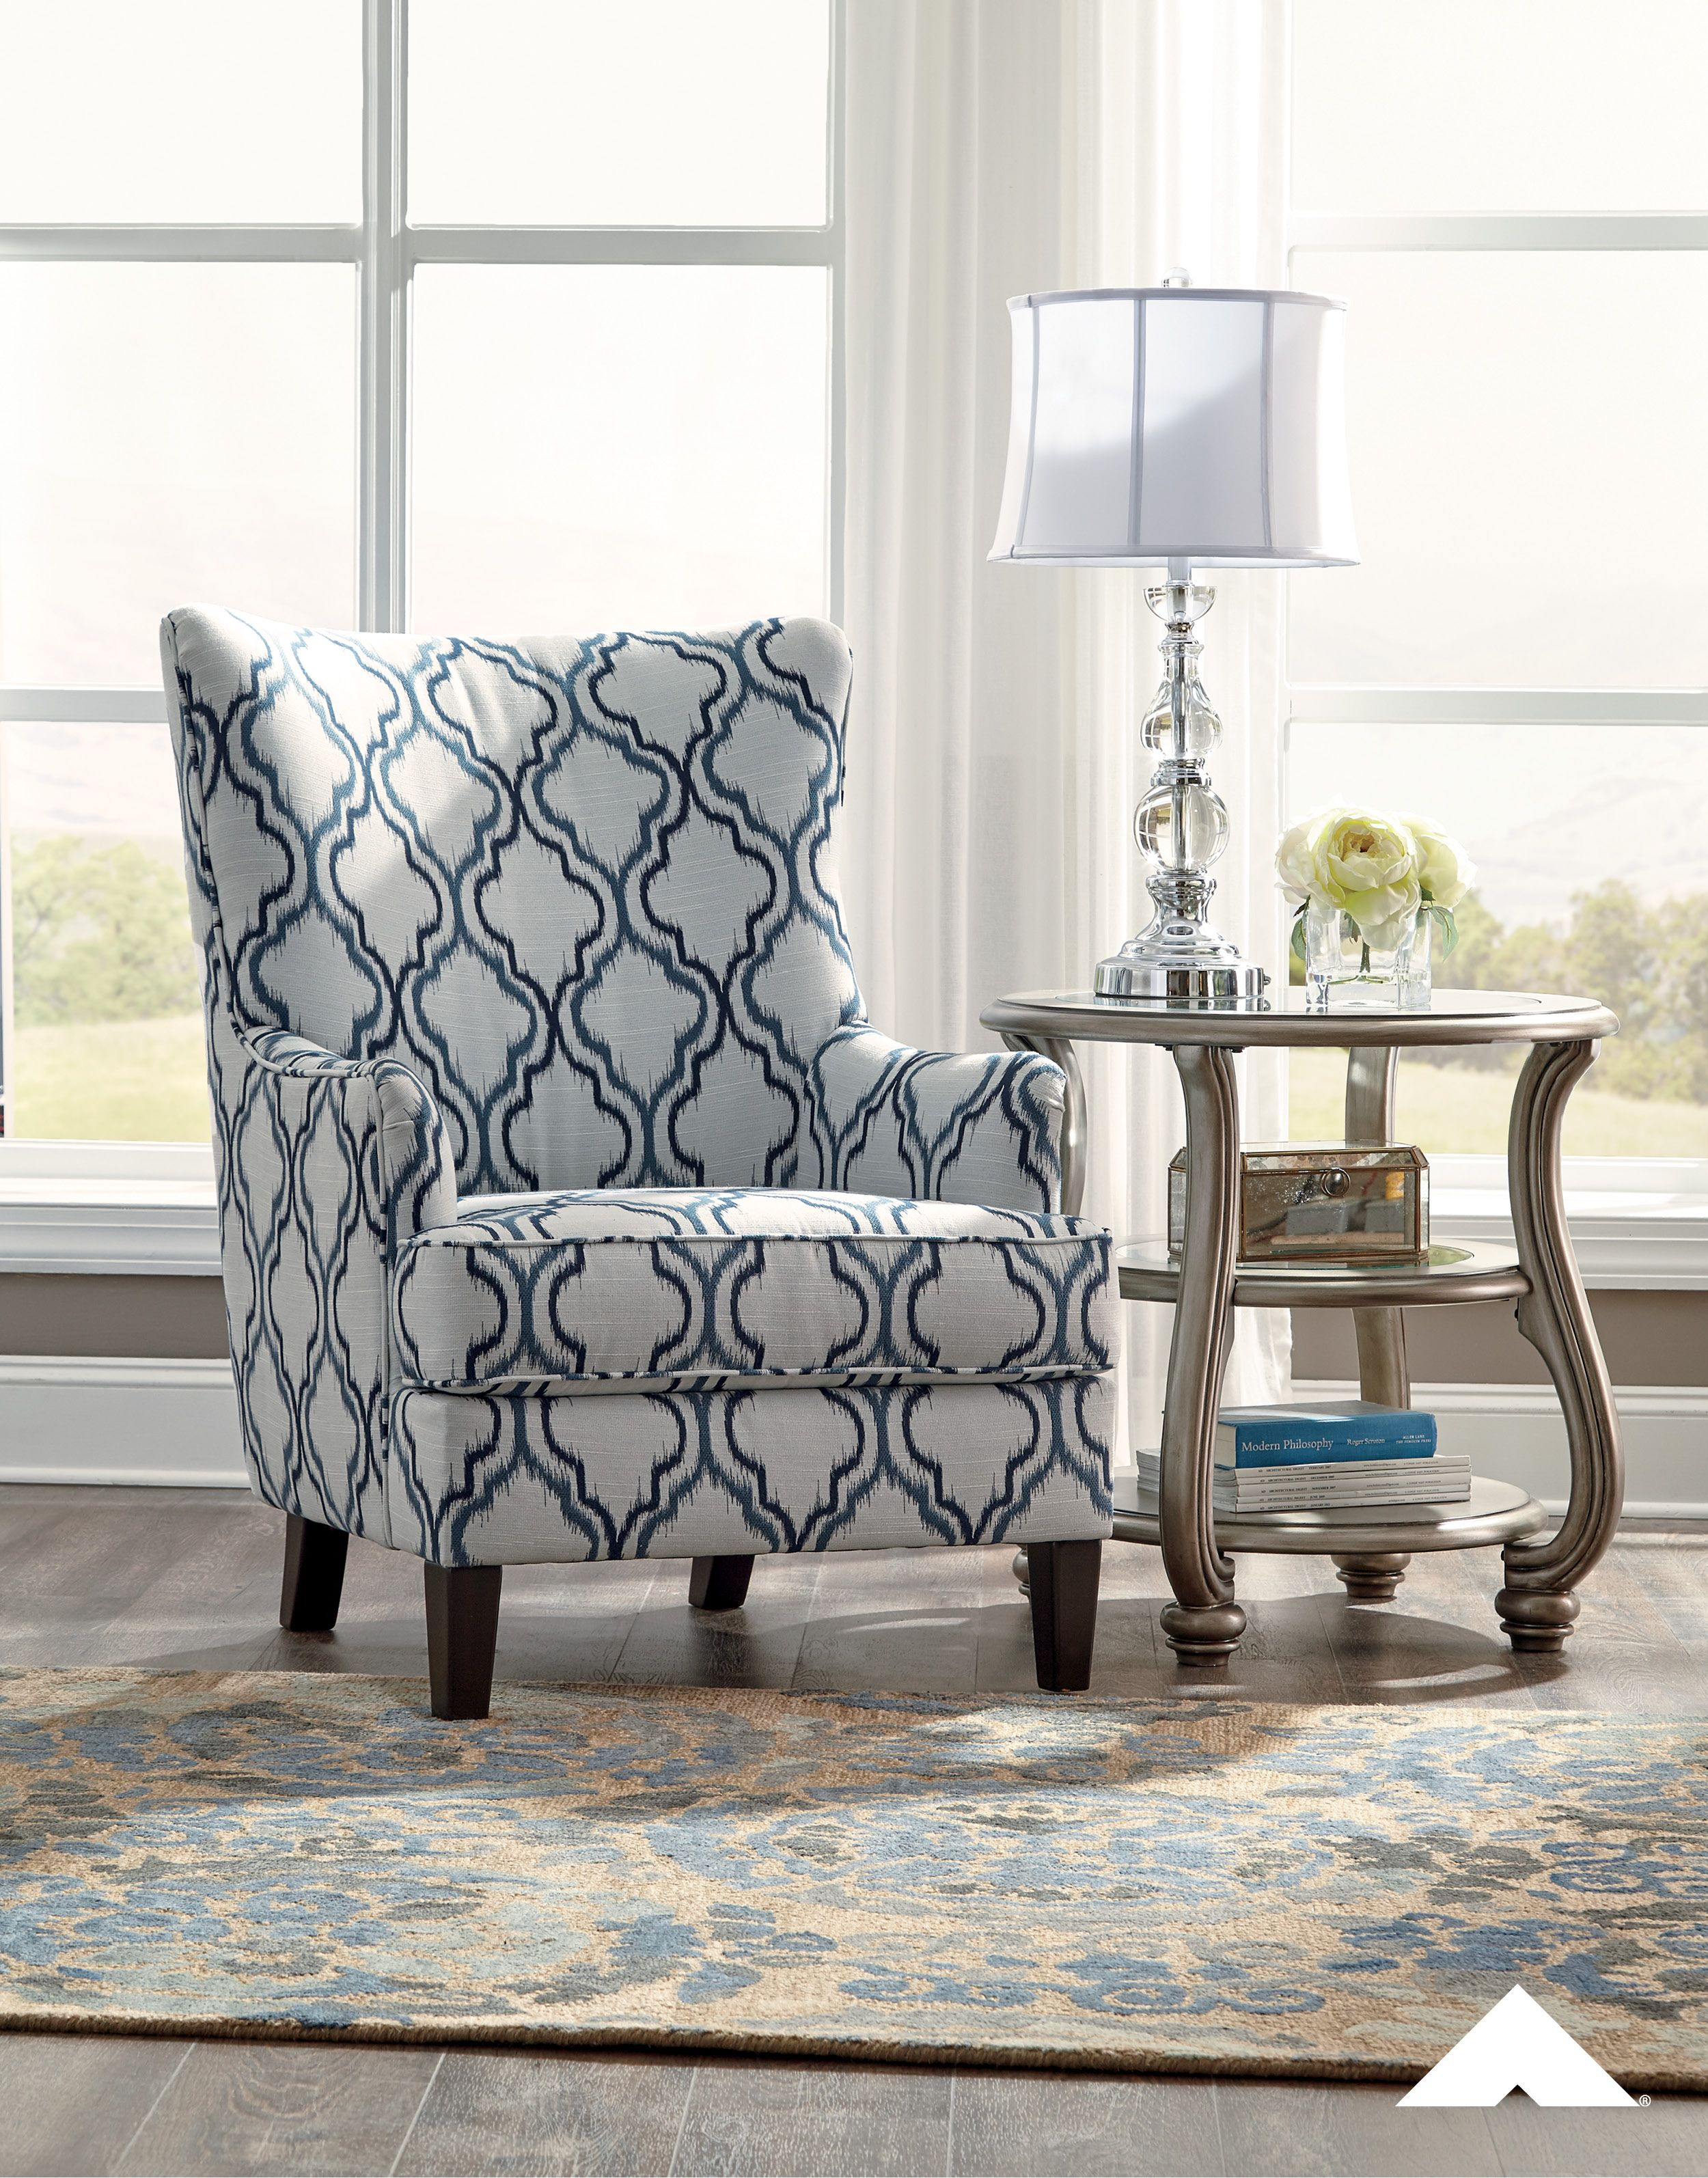 Lavernia Indigo Traditional Accent Chair By Ashley Furniture Ashleyfurniture Homedecor Livingroom Chair Chairs With Images Accent Chairs For Living Room